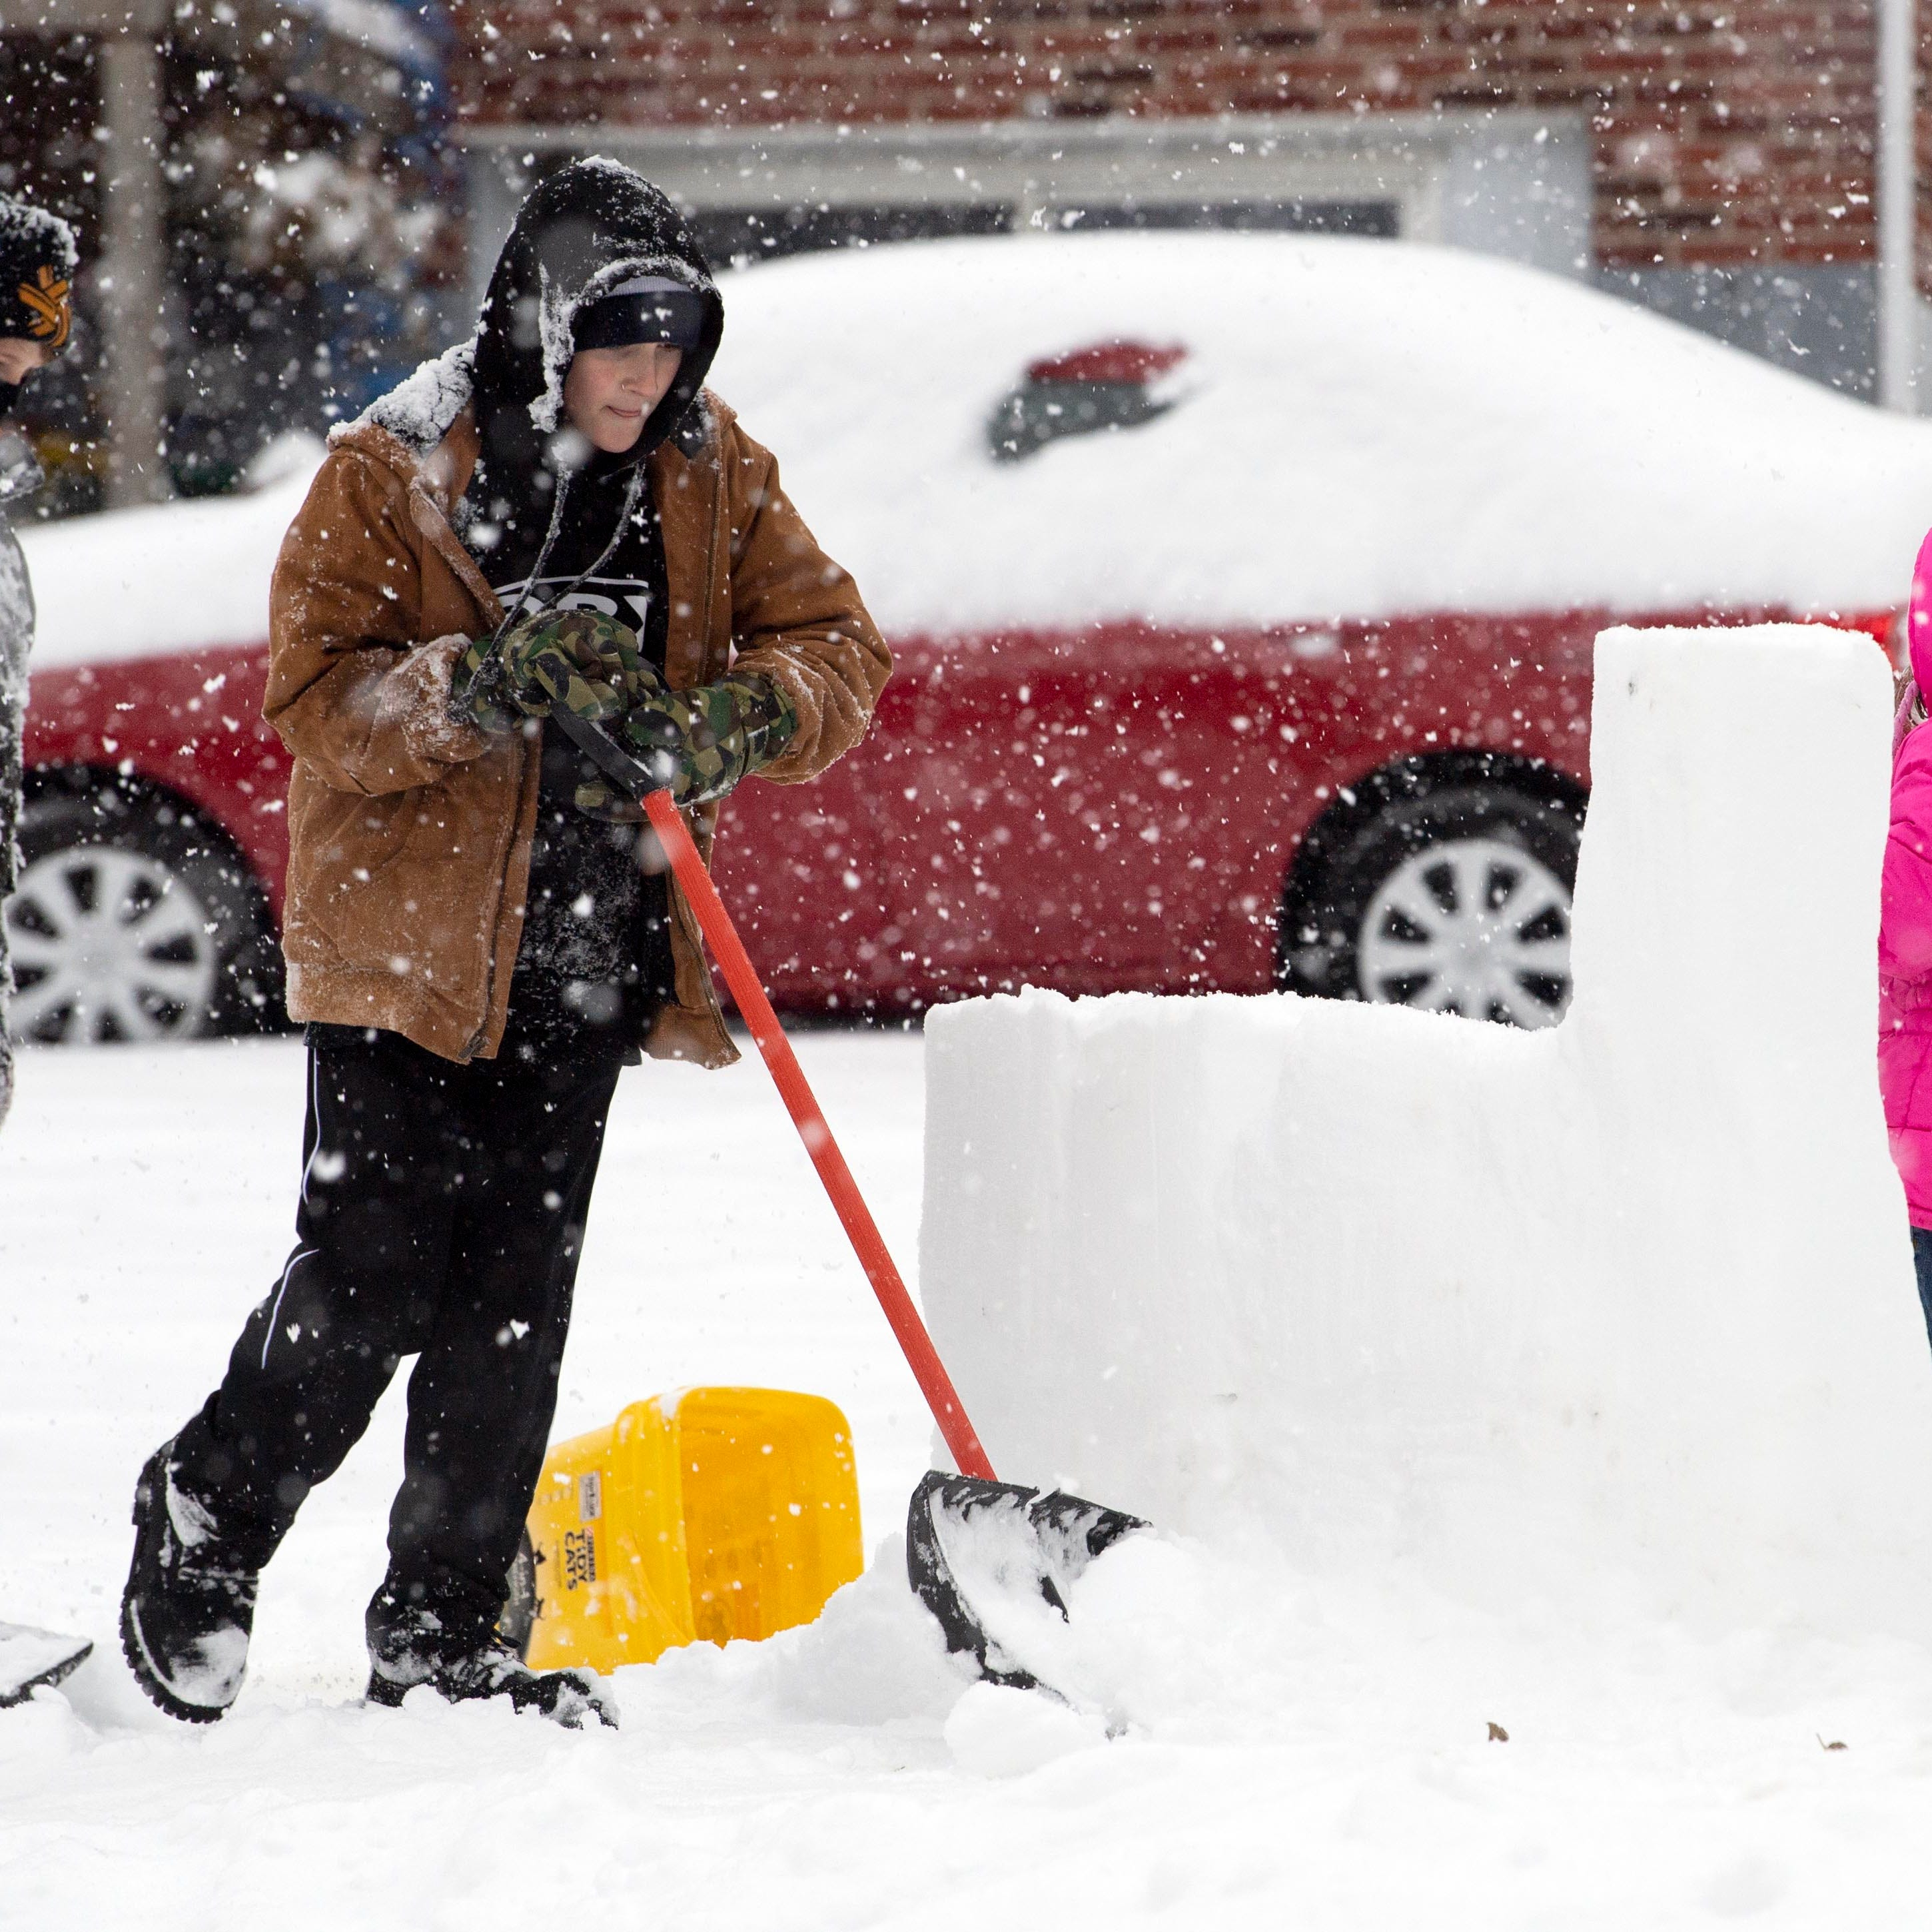 Snow in the forecast for central Pa. this week, National Weather Service says